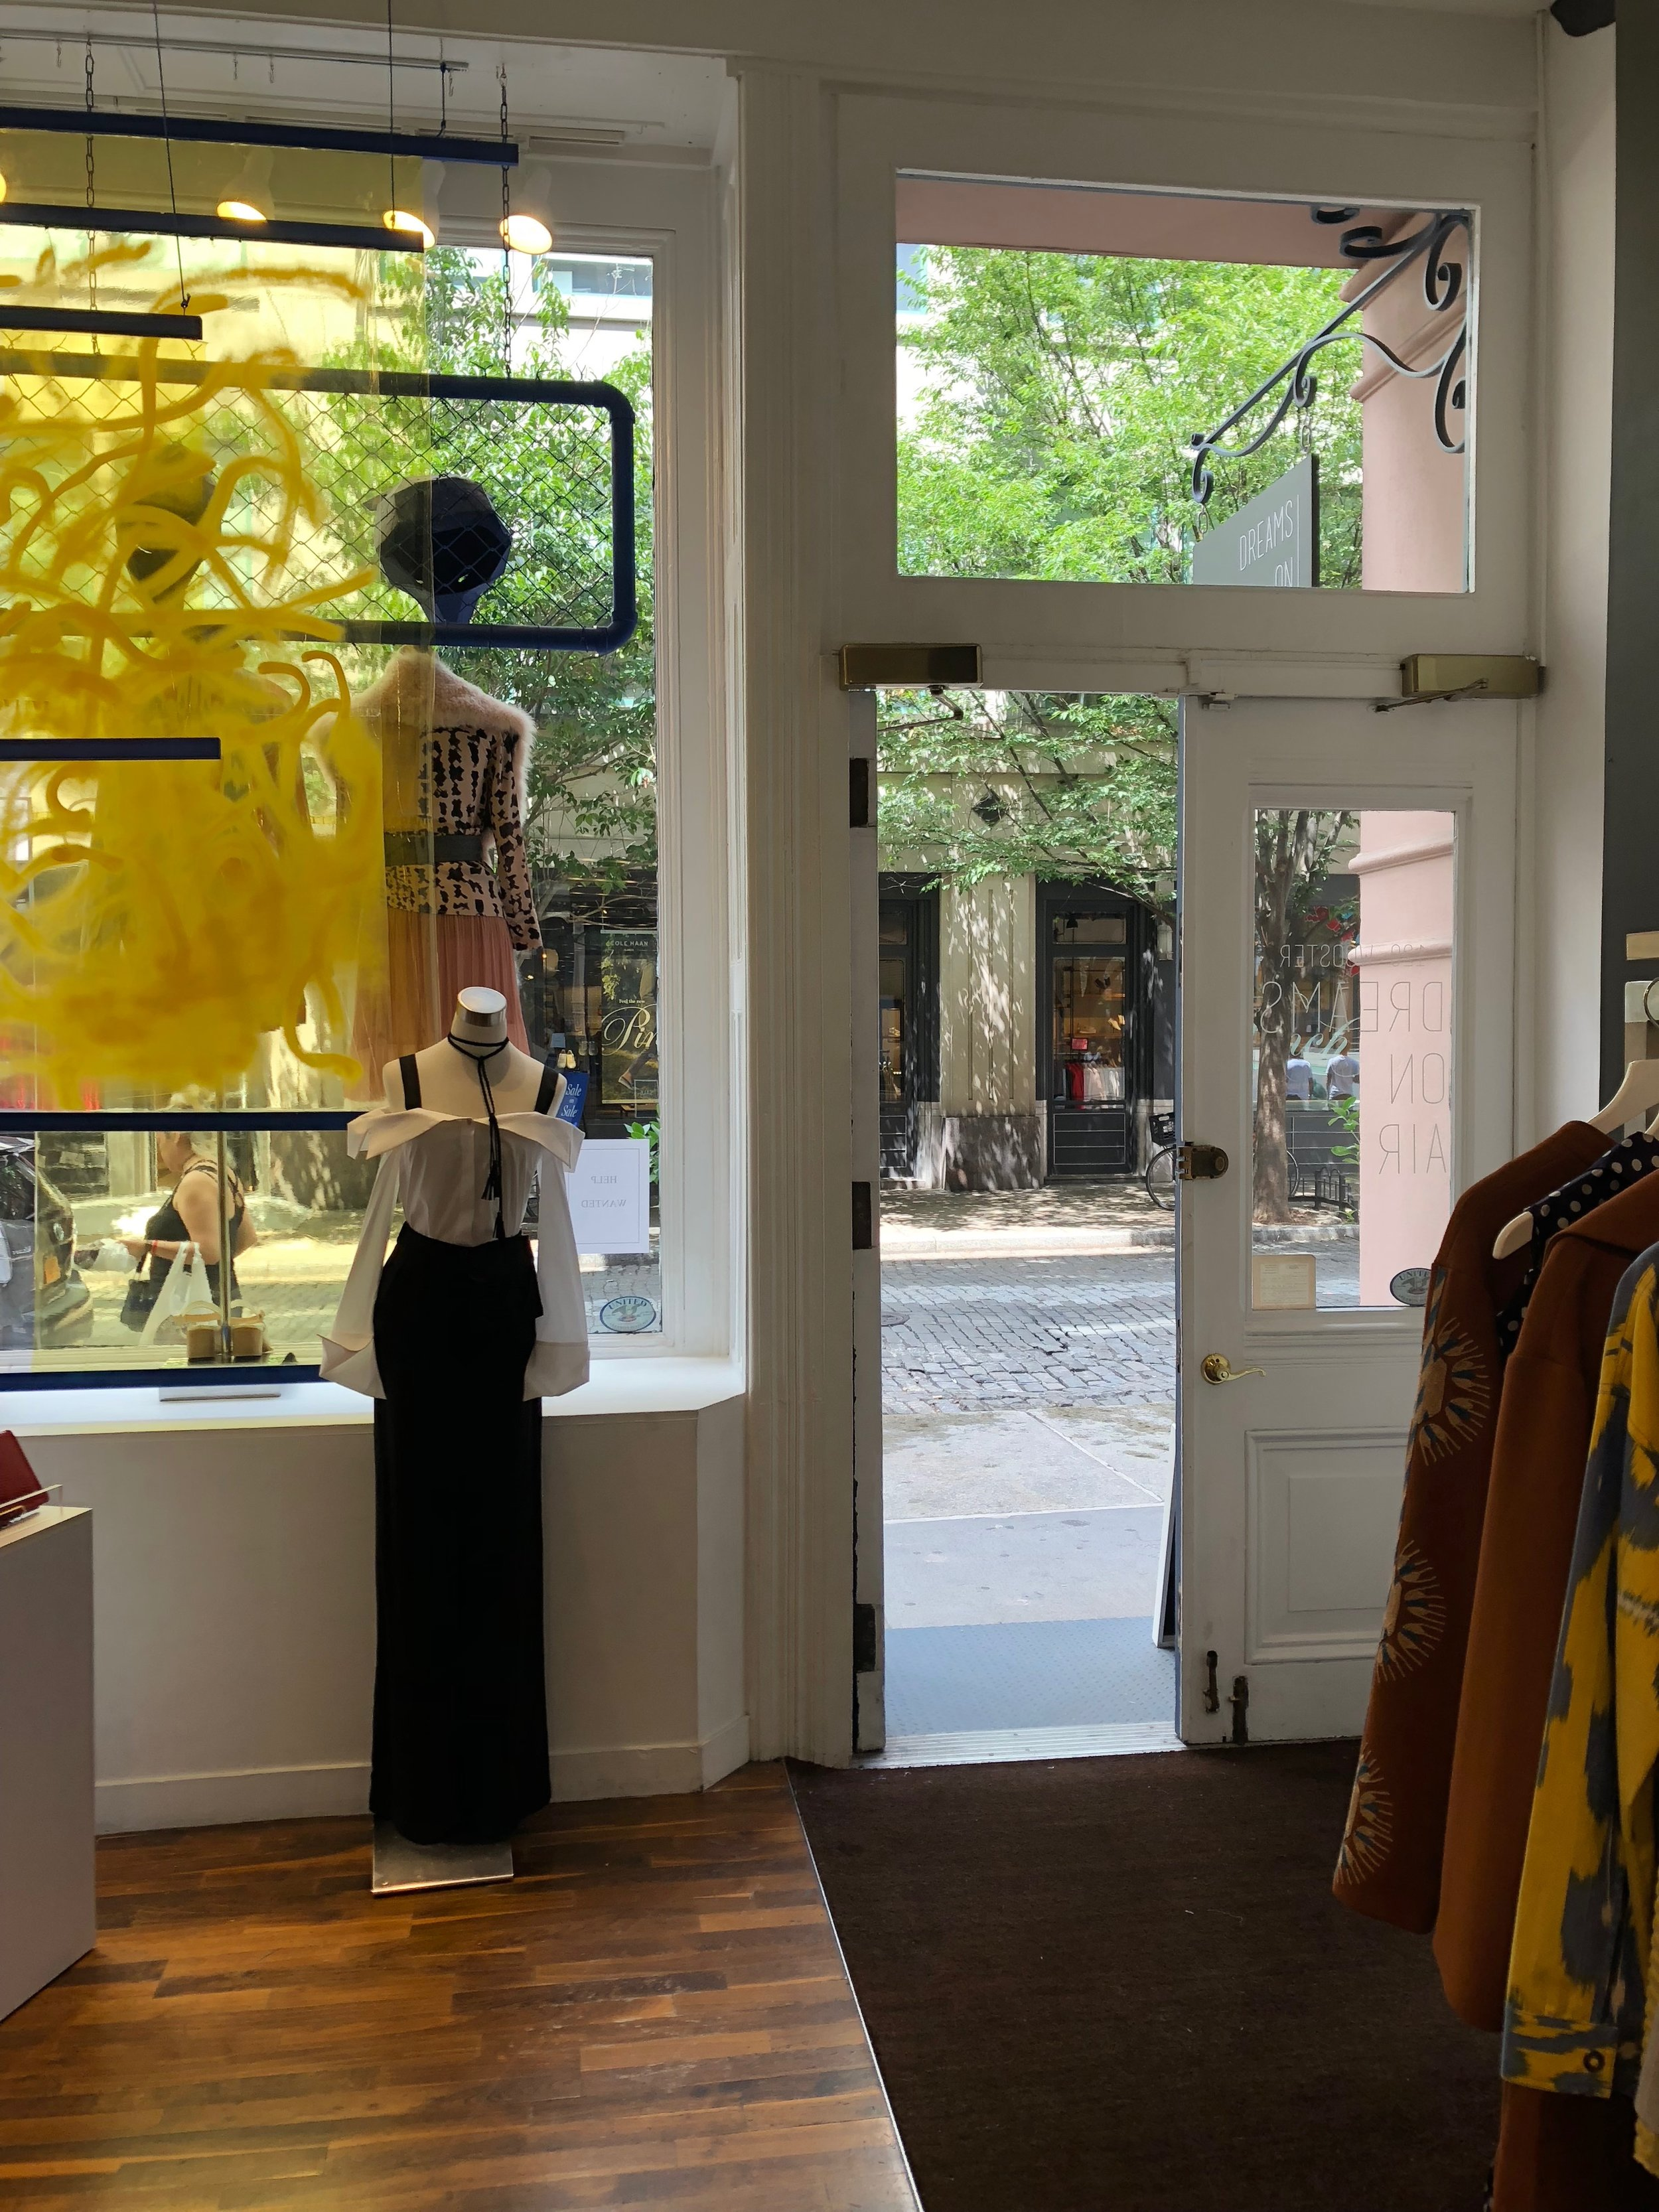 Wooster Street view from inside